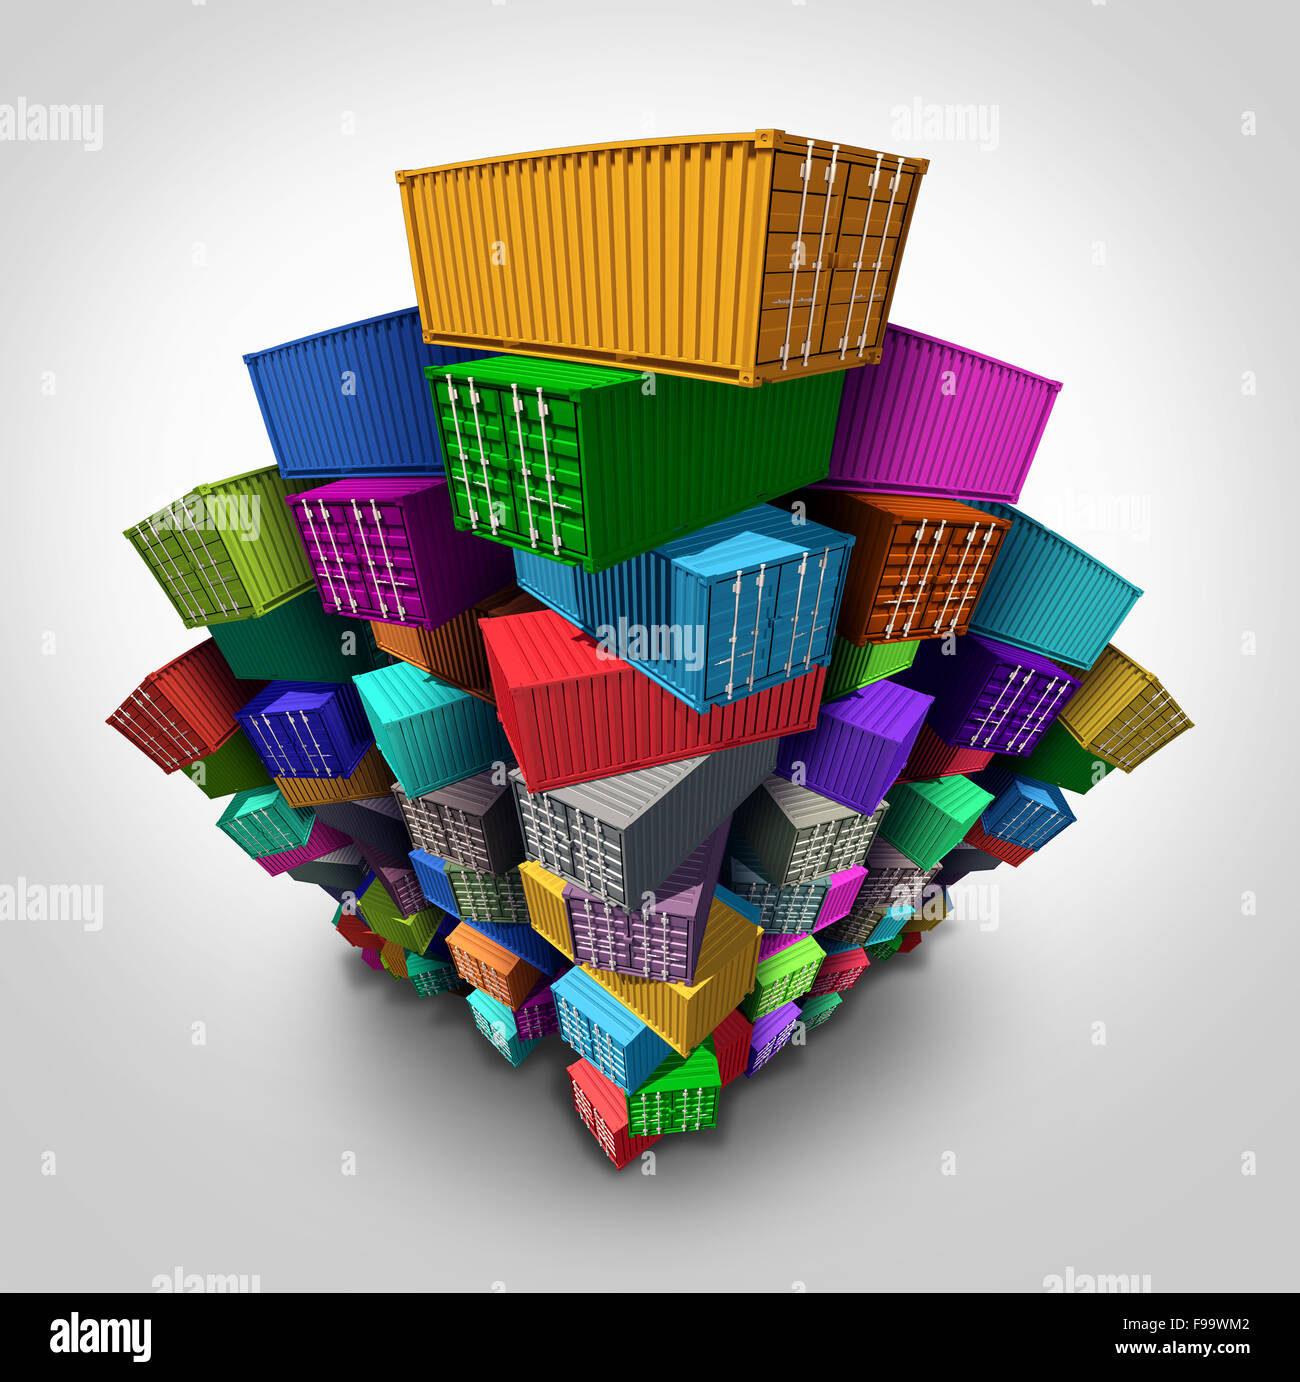 Cargo freight containers stacked high in a group as an export import shipping concept or embargo and sanctions symbol - Stock Image